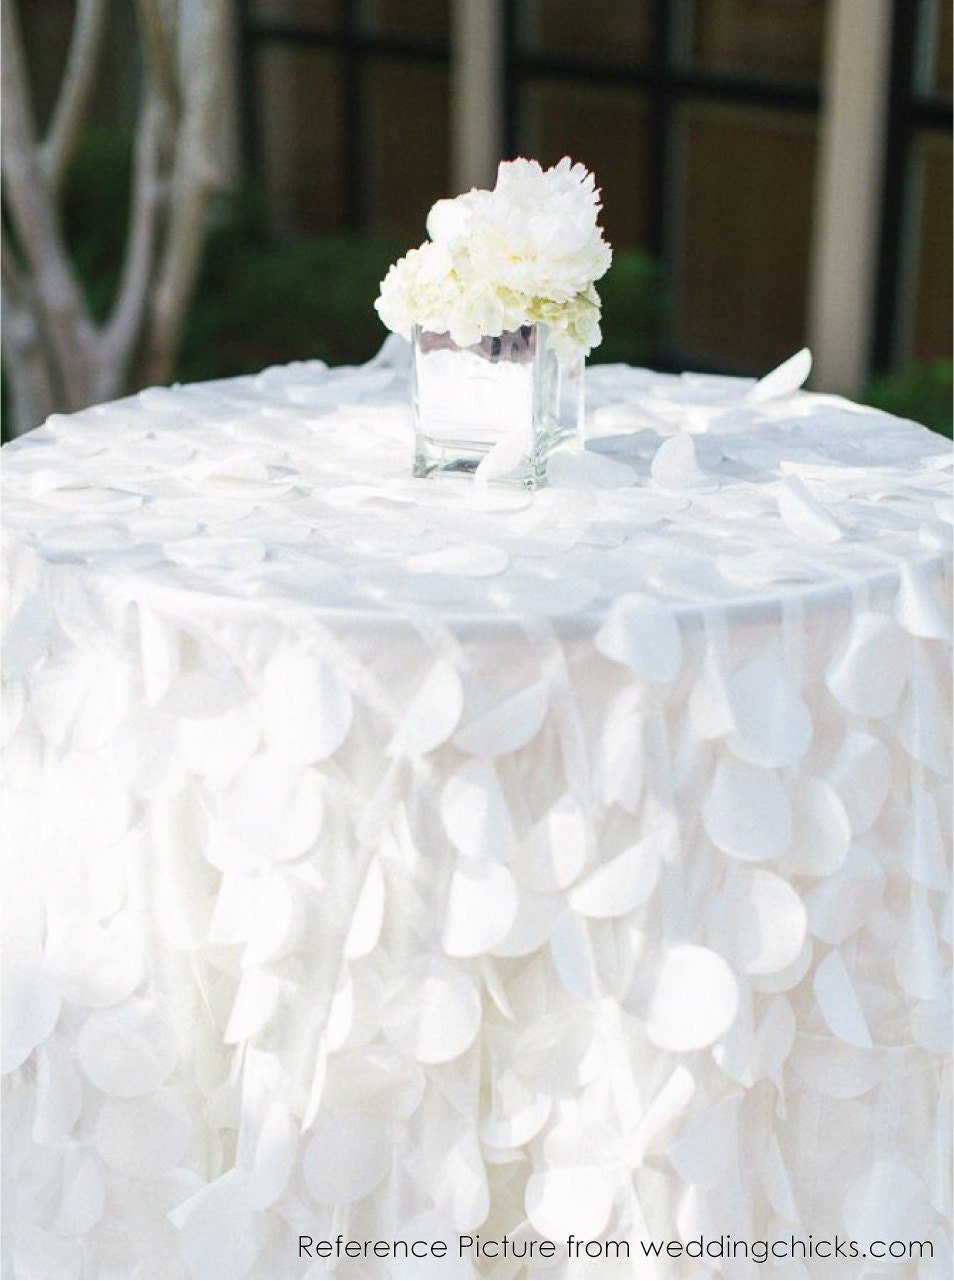 Shimmery Petal Tablecloths Made To Order White Taffeta Petal